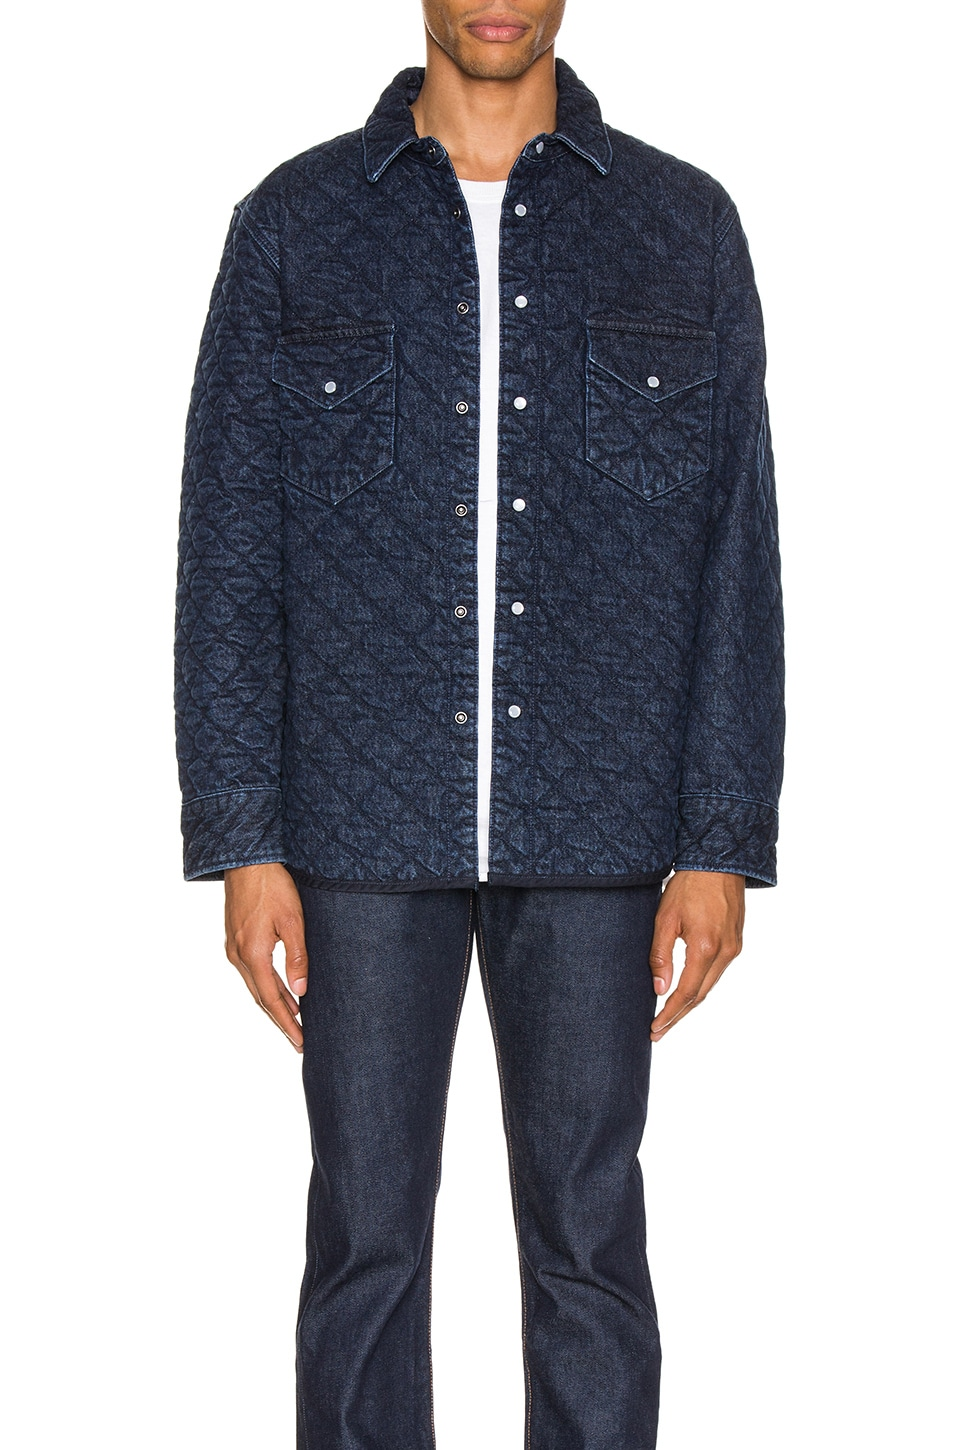 LEVI'S: Made & Crafted Quilted Western Shirt en Outback